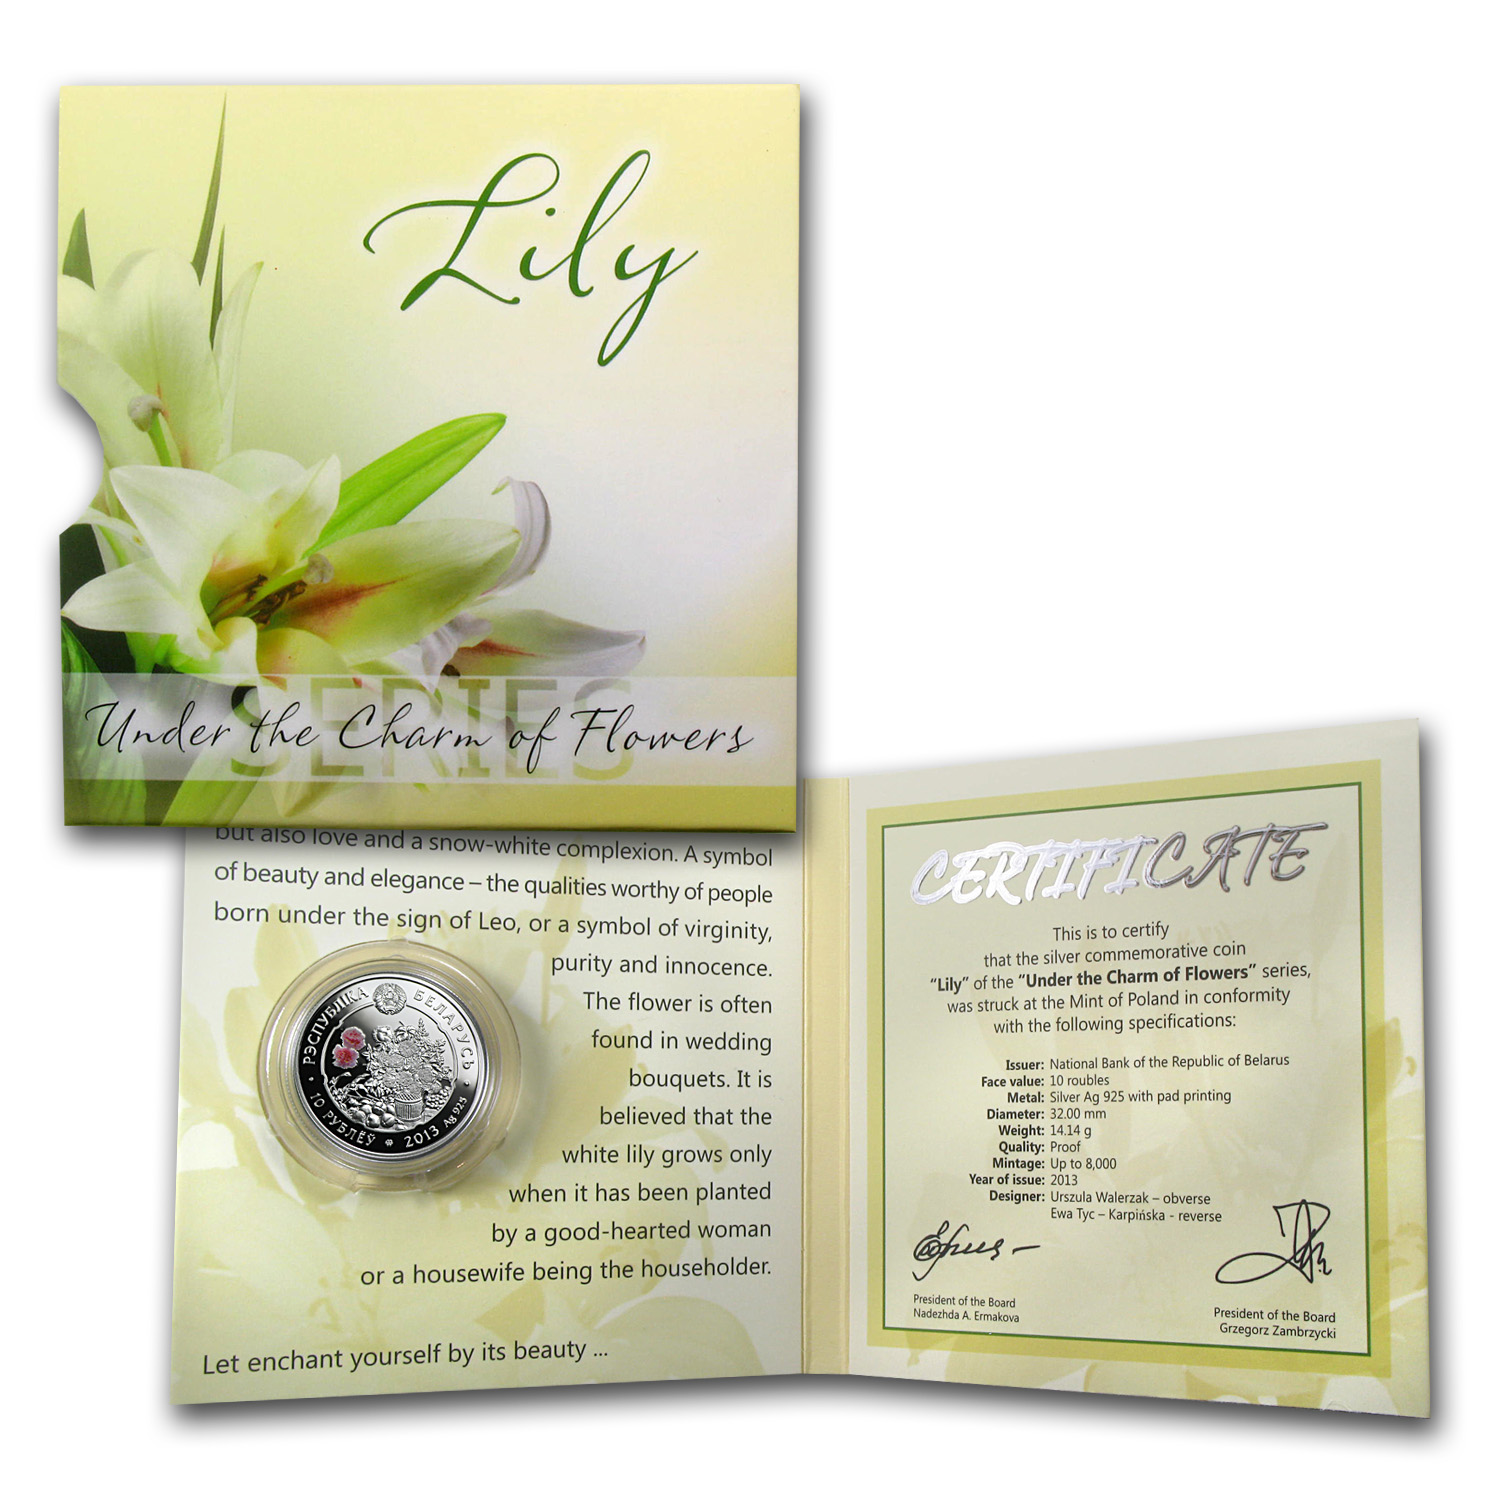 2013 Belarus Silver Proof Under the Charm of Flowers Lily